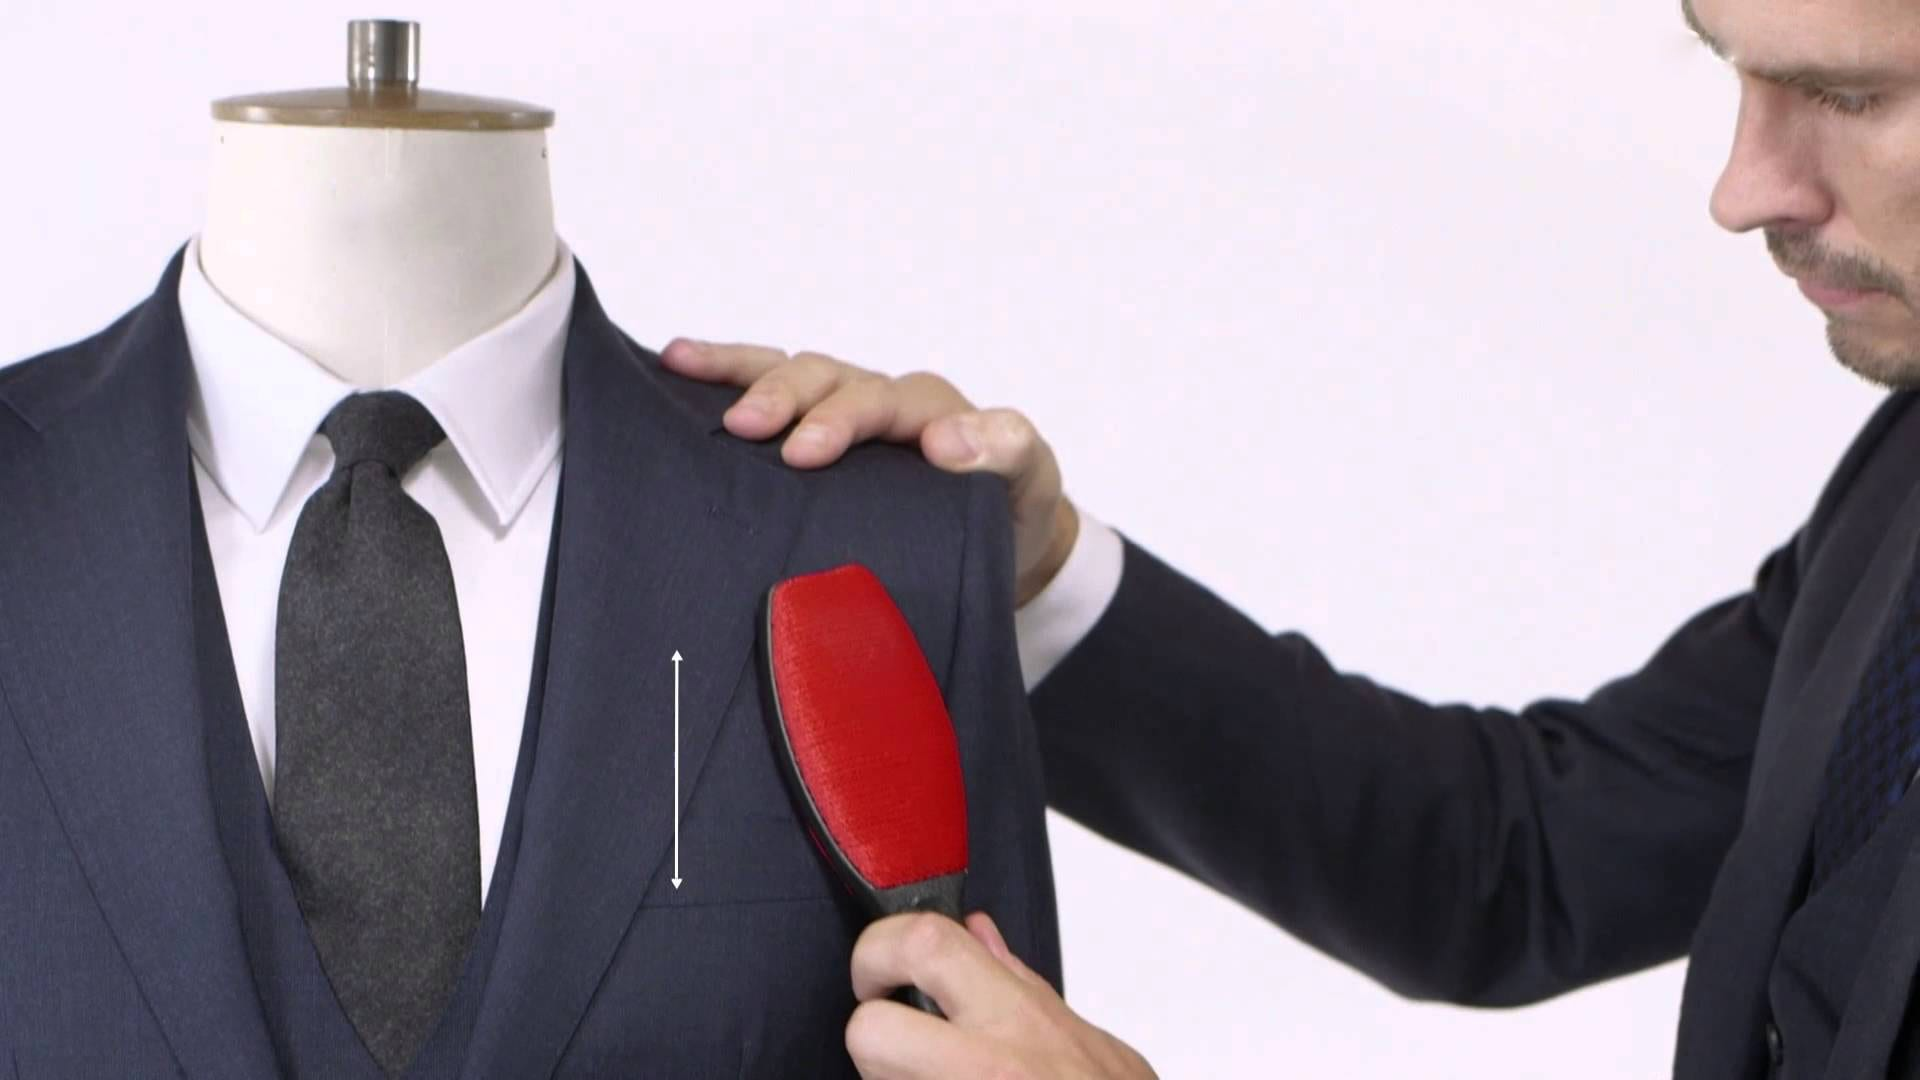 Suit Cleaning Hack Using Suit Brush